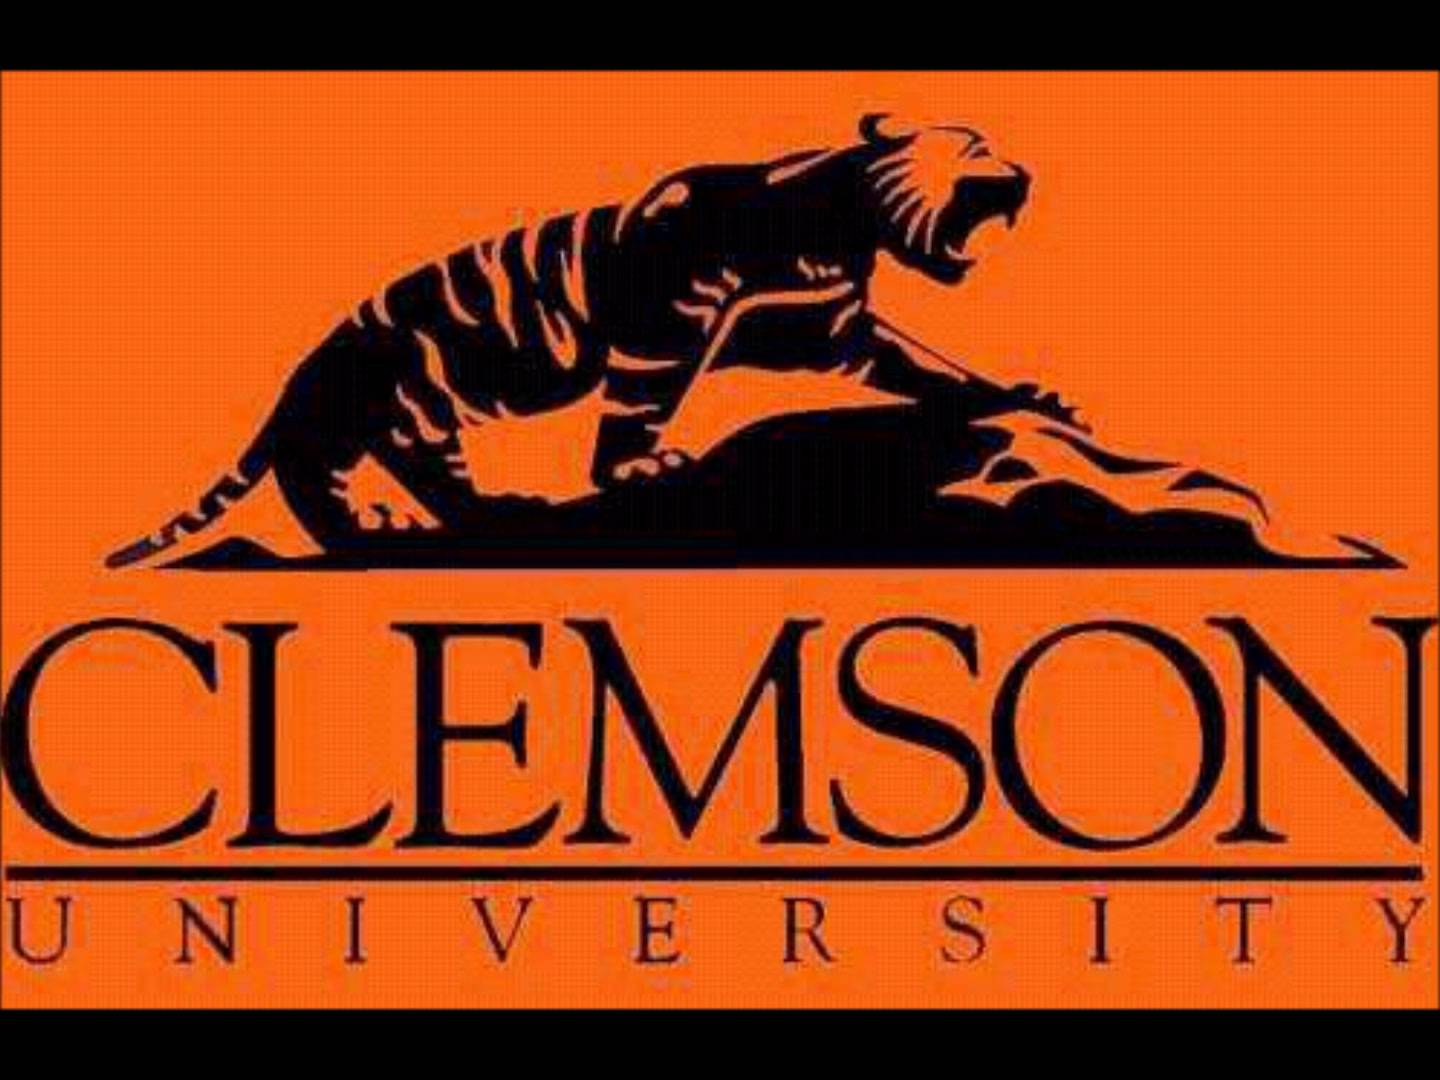 Clemson University Unveils Racist Diversity Training